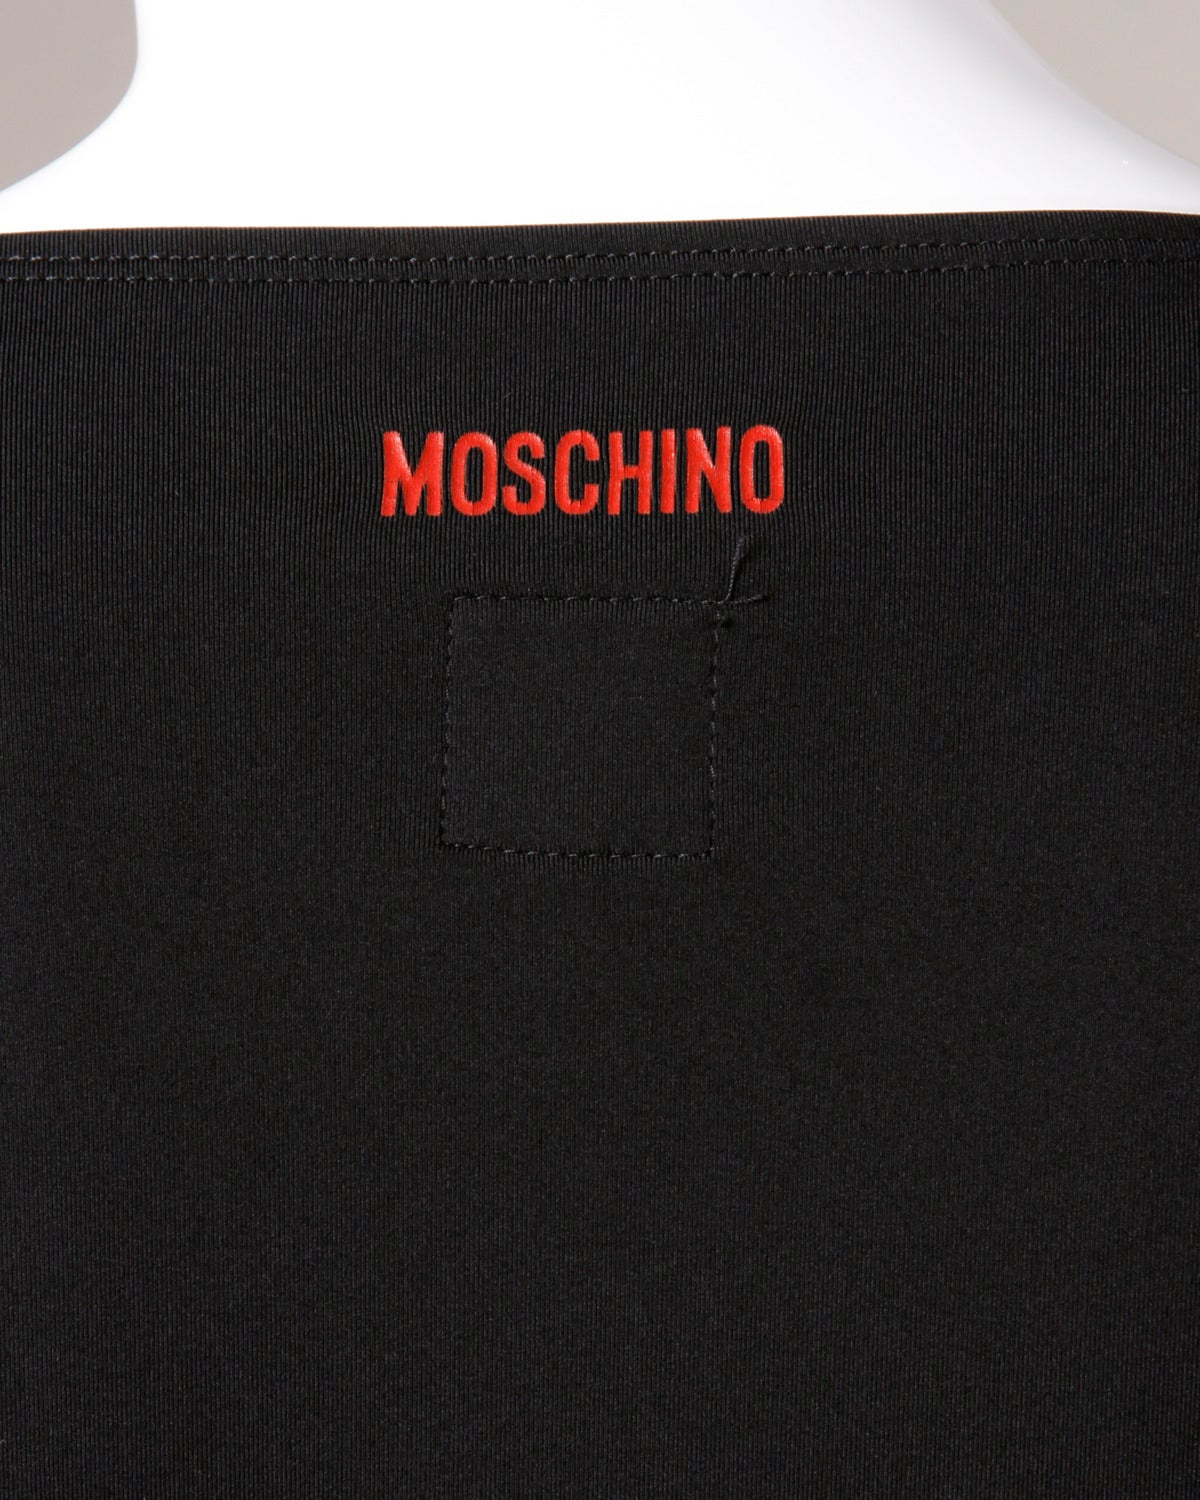 "Moschino Vintage 1990s 90s ""Fashion is No More..."" Maxi Dress 6"